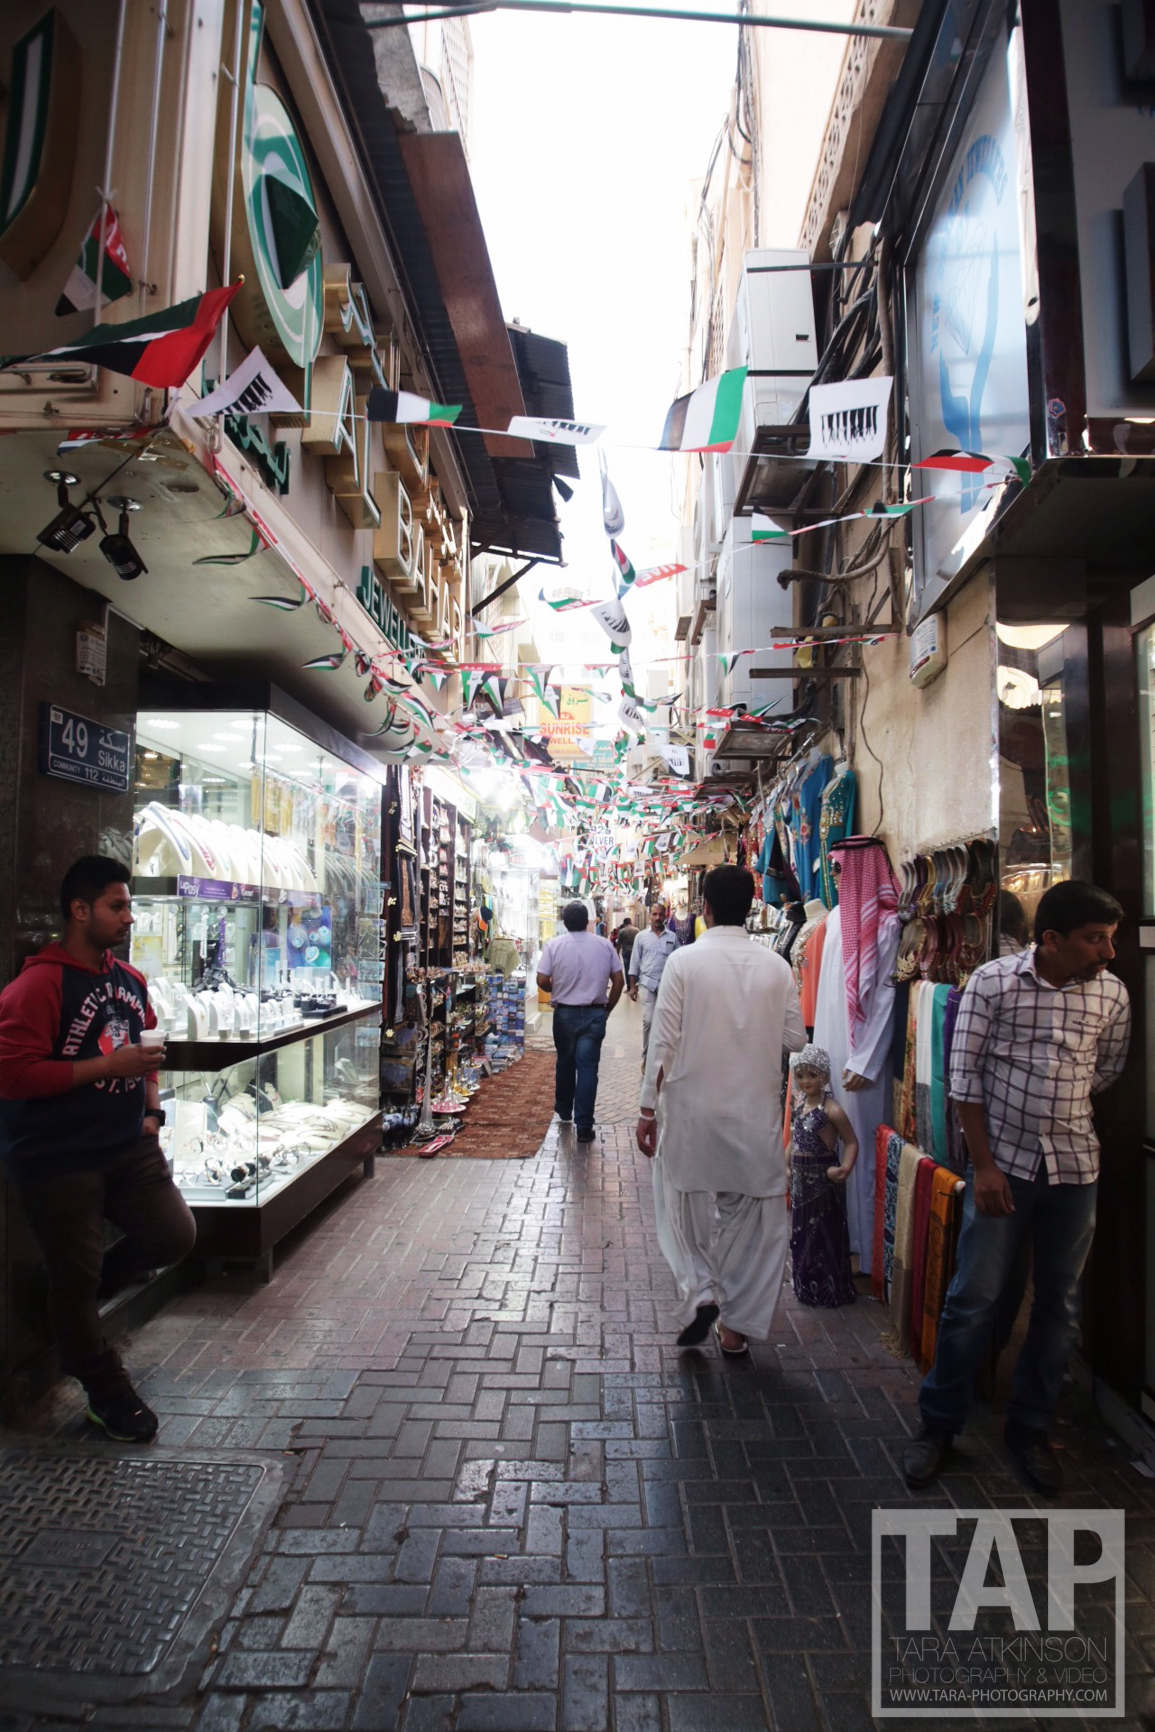 Heading back to the Deira side of the creek where you can find gold and spices